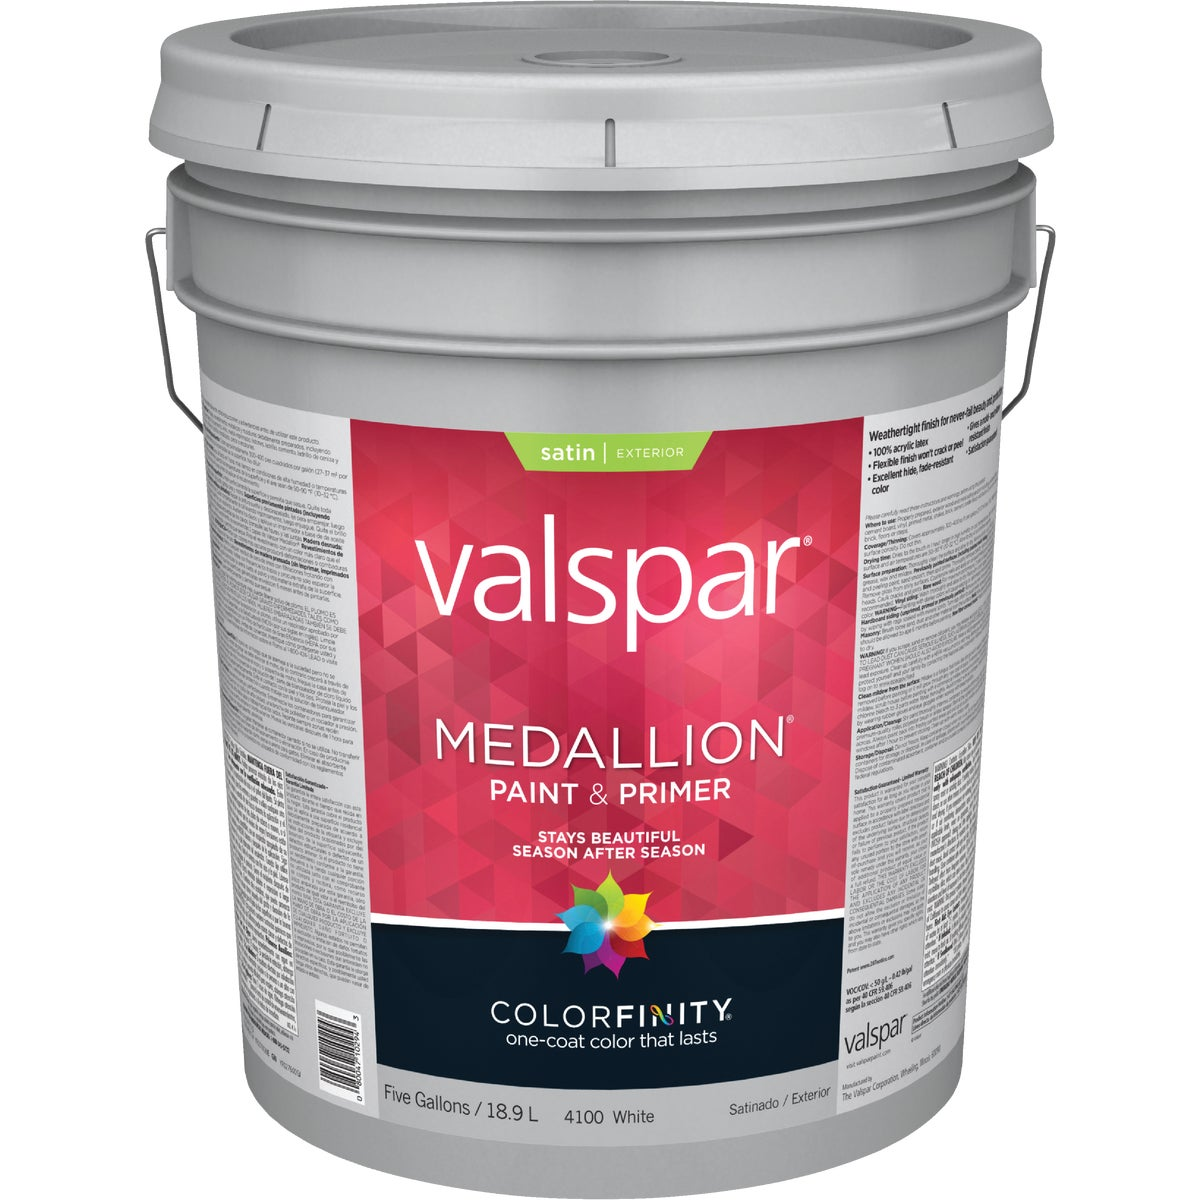 EXT SAT WHITE PAINT - 027.0004100.008 by Valspar Corp